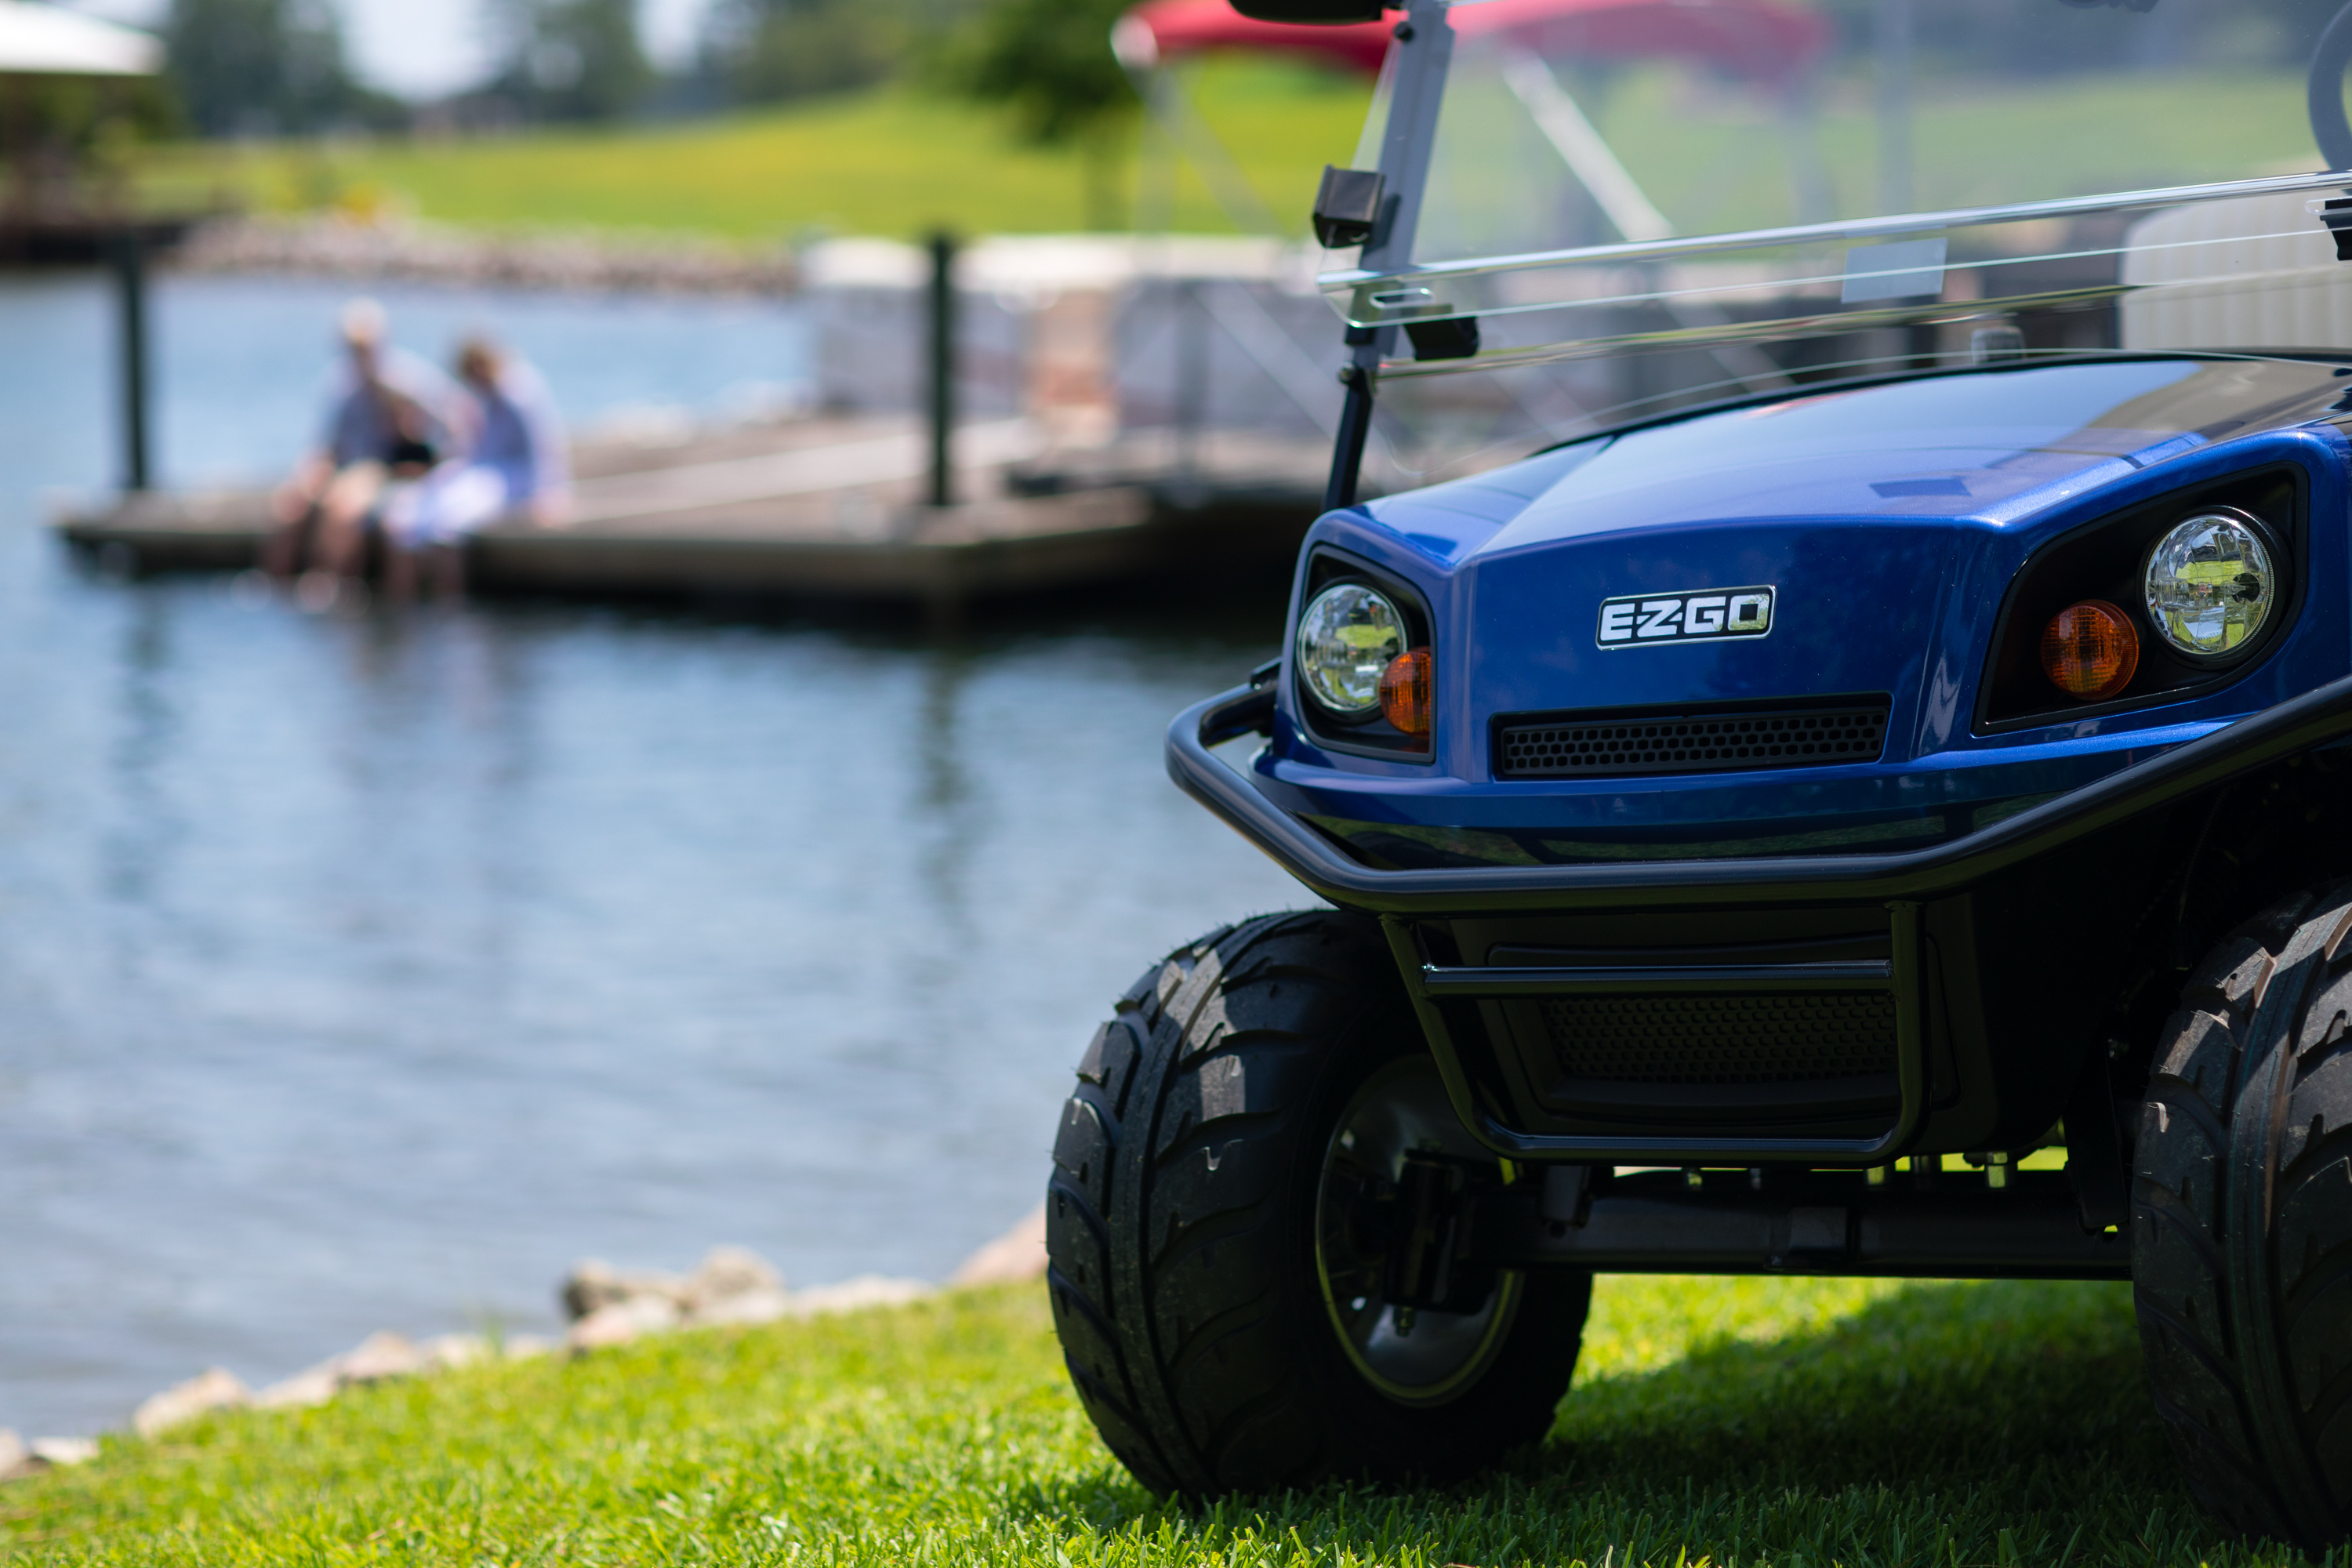 E-Z-GO golf cart parked near a lake